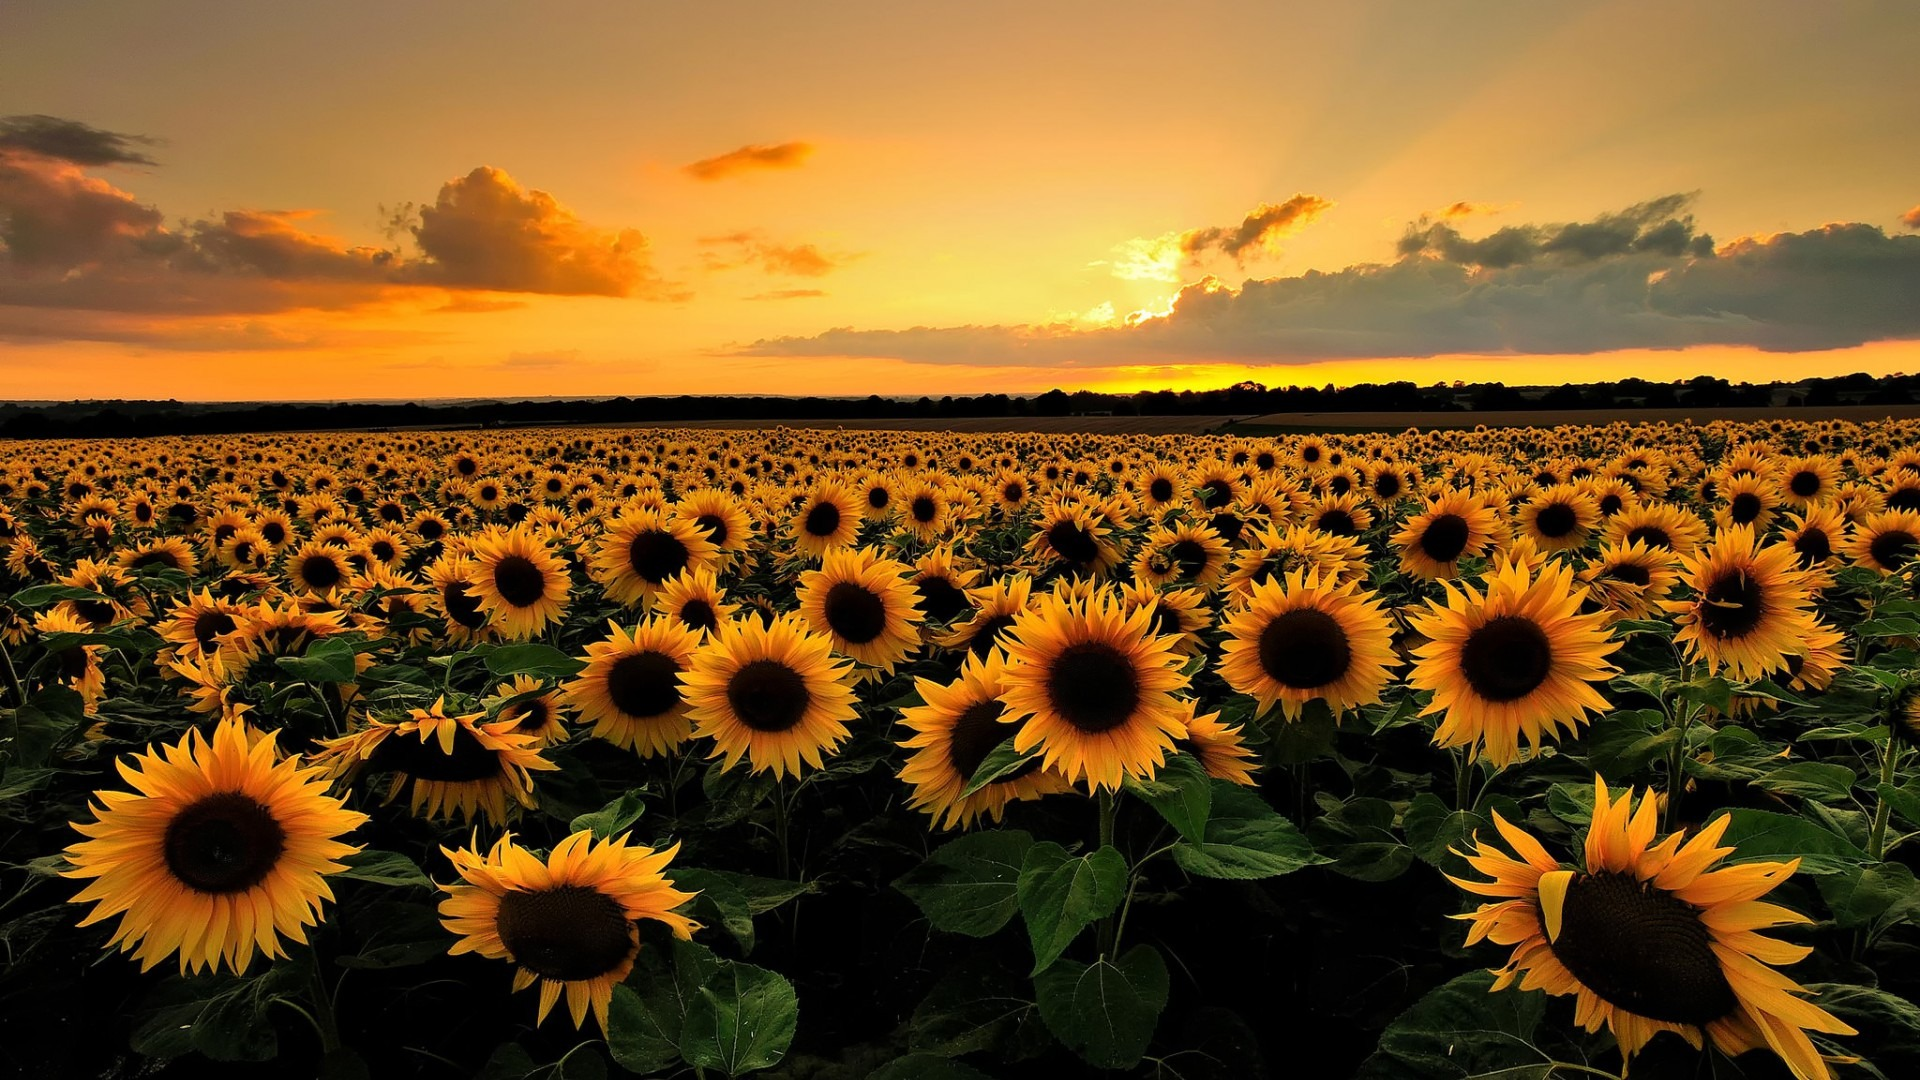 Sunflowers Field HD Desktop Wallpaper HD Desktop Wallpaper 1920x1080